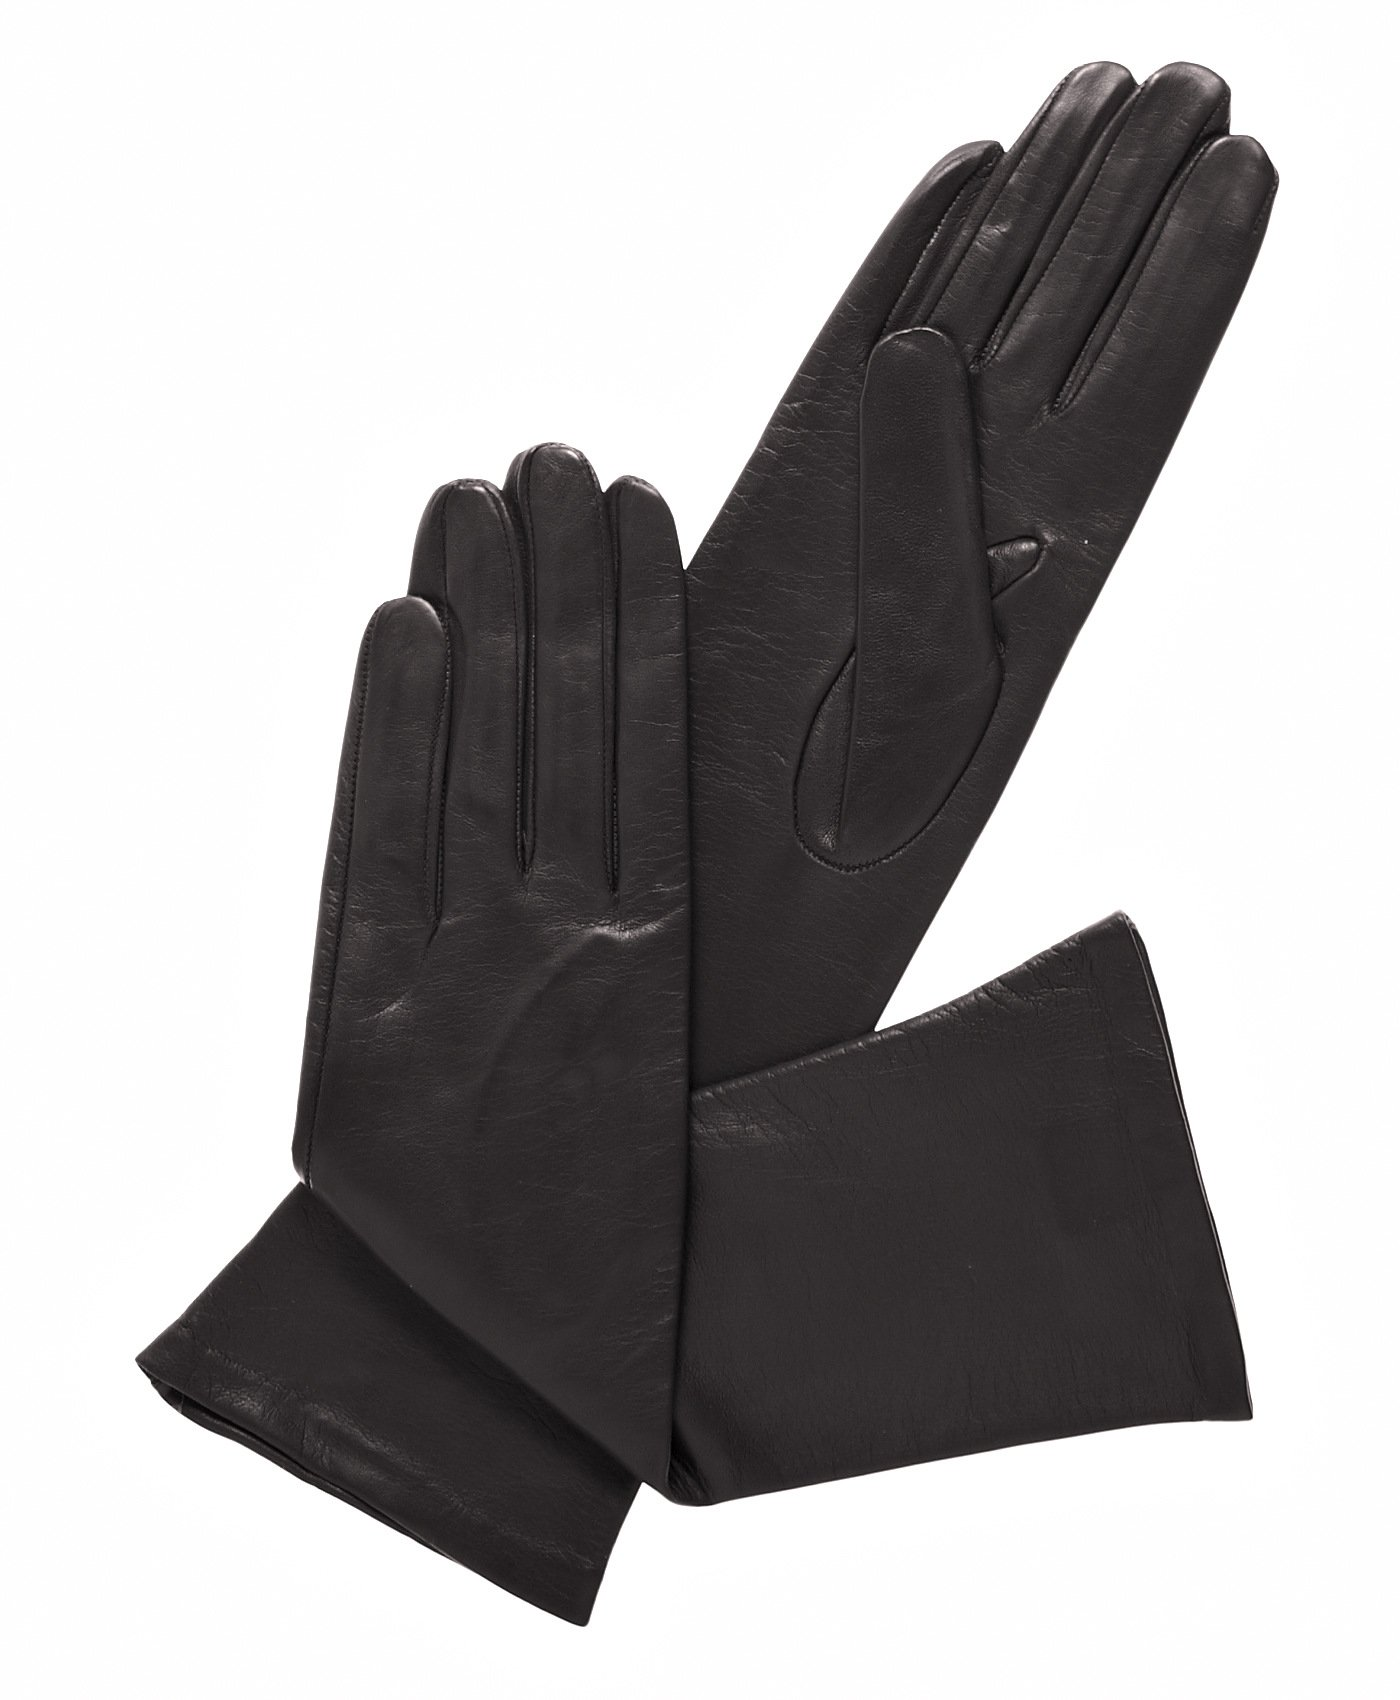 Fratelli Orsini Women's Italian ''6 Button Length'' Silk Lined Leather Gloves Size 7 Color Black